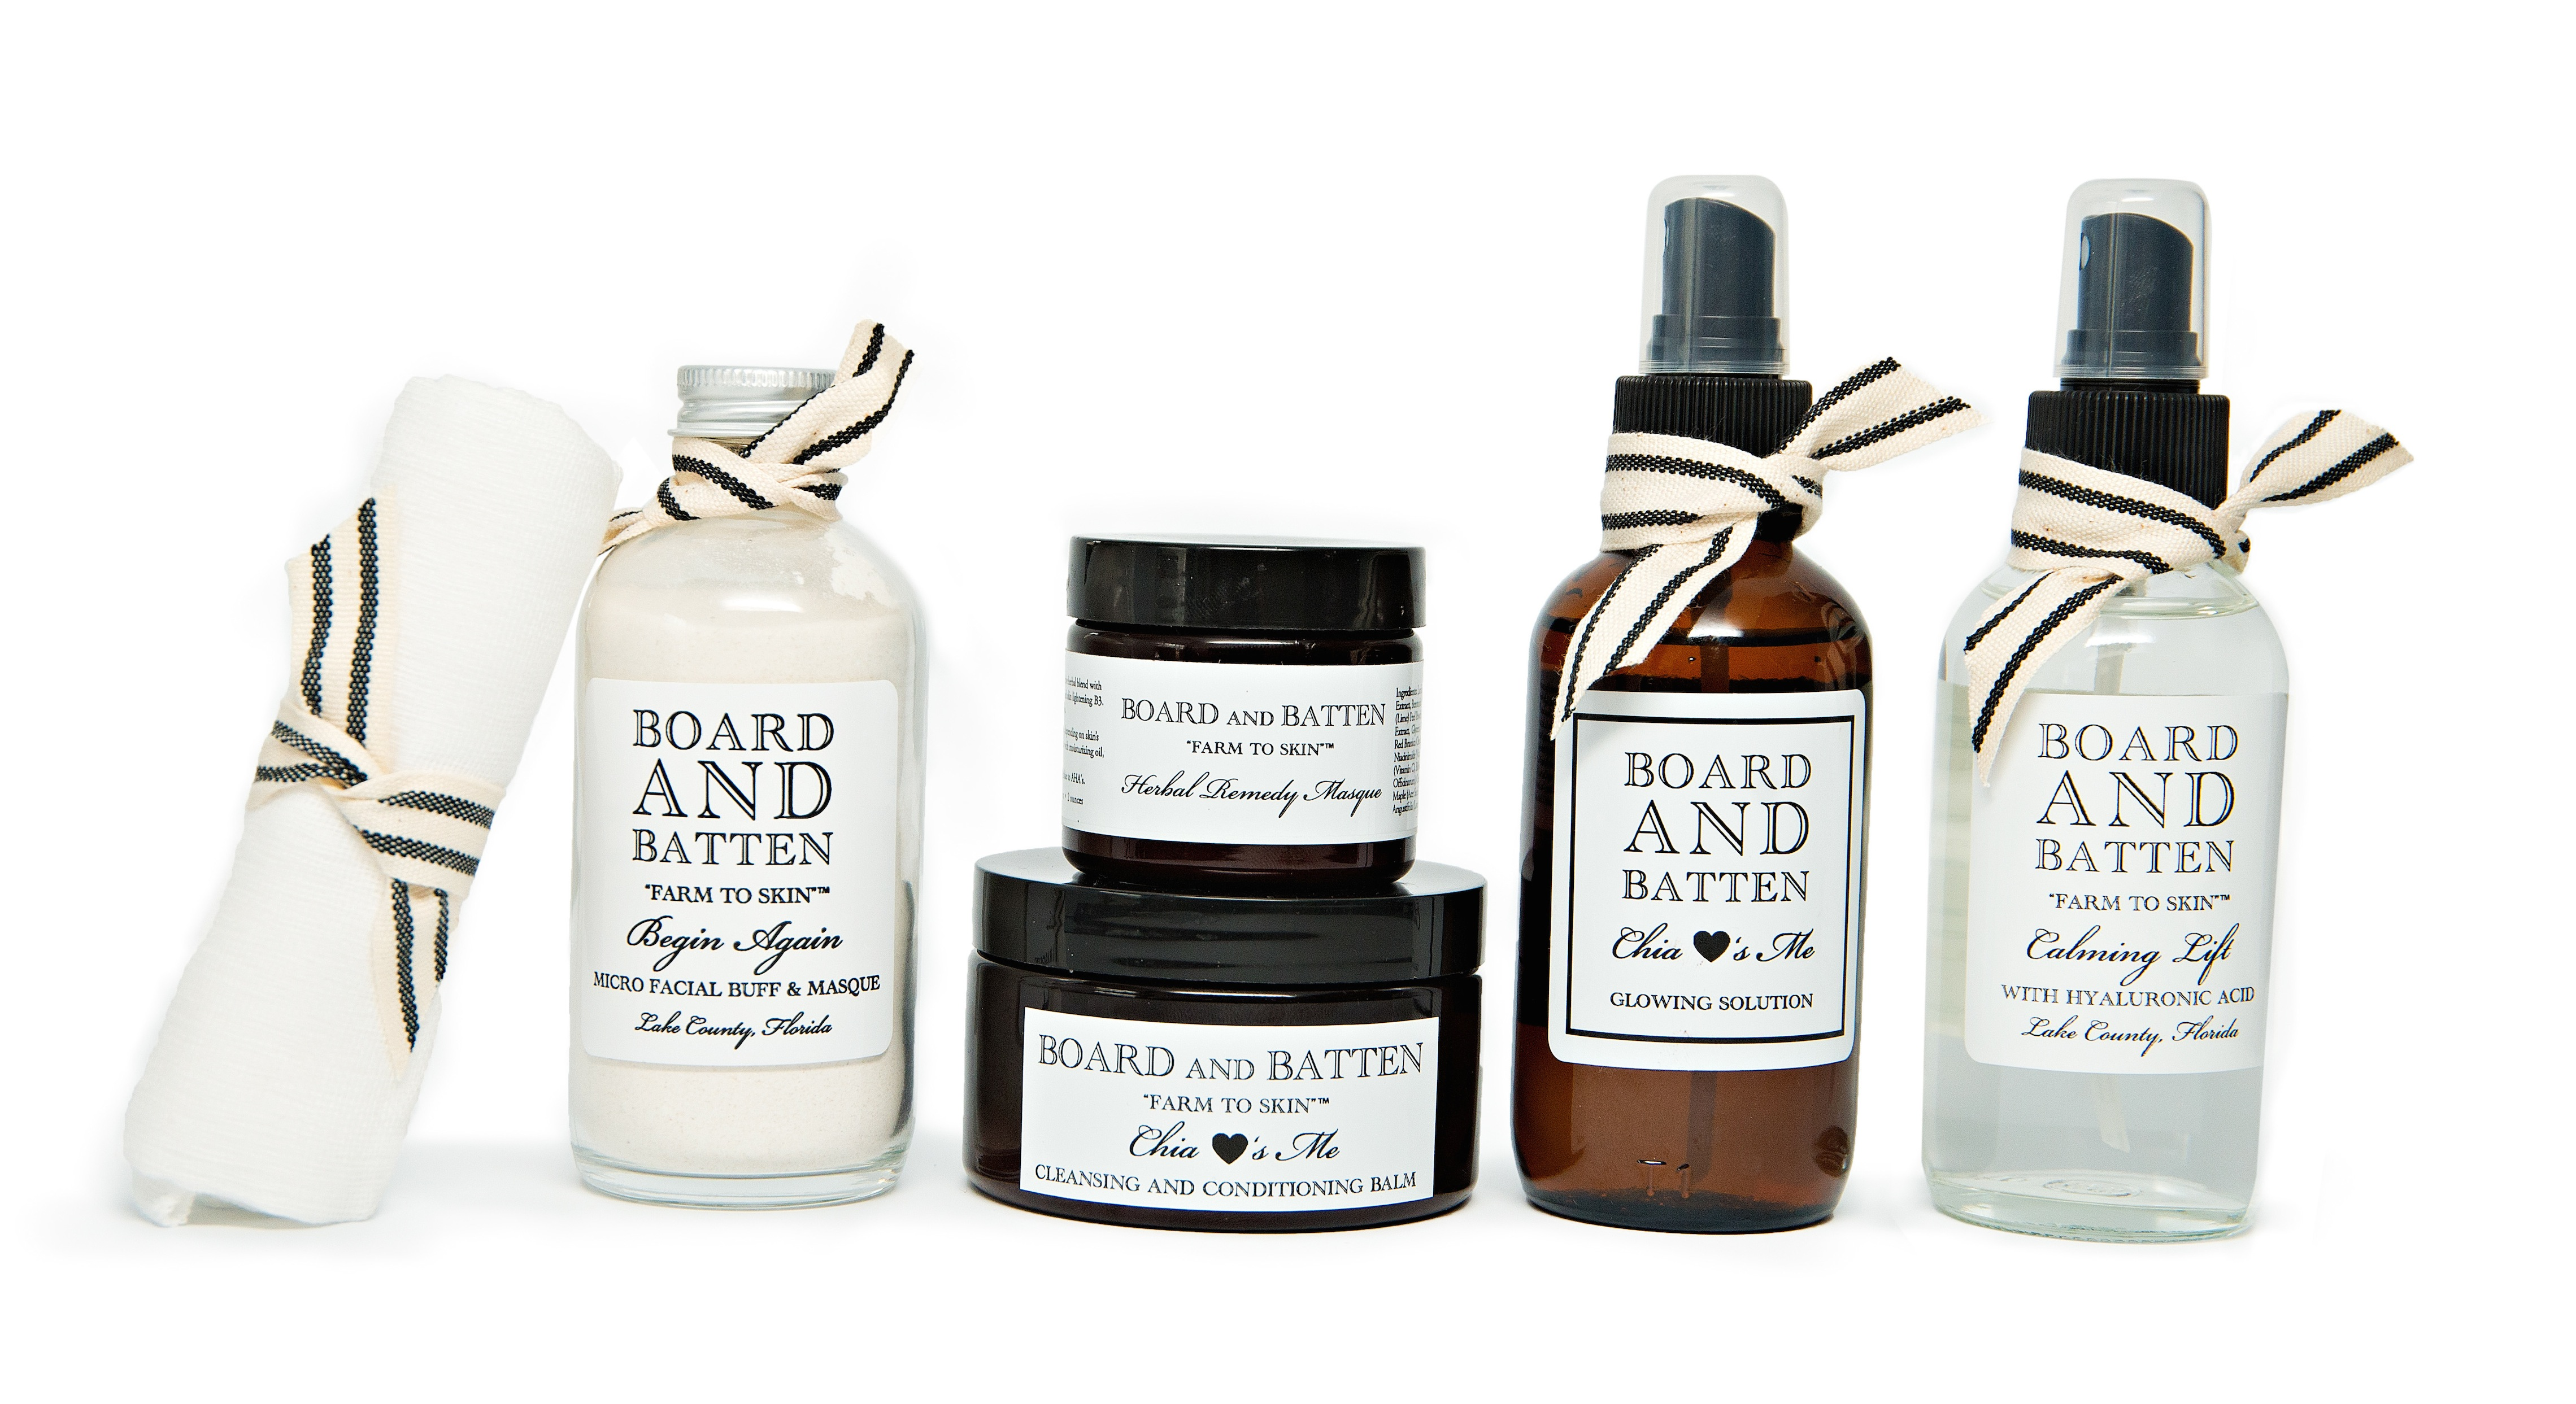 Natural Skin Care products line Board and Batten